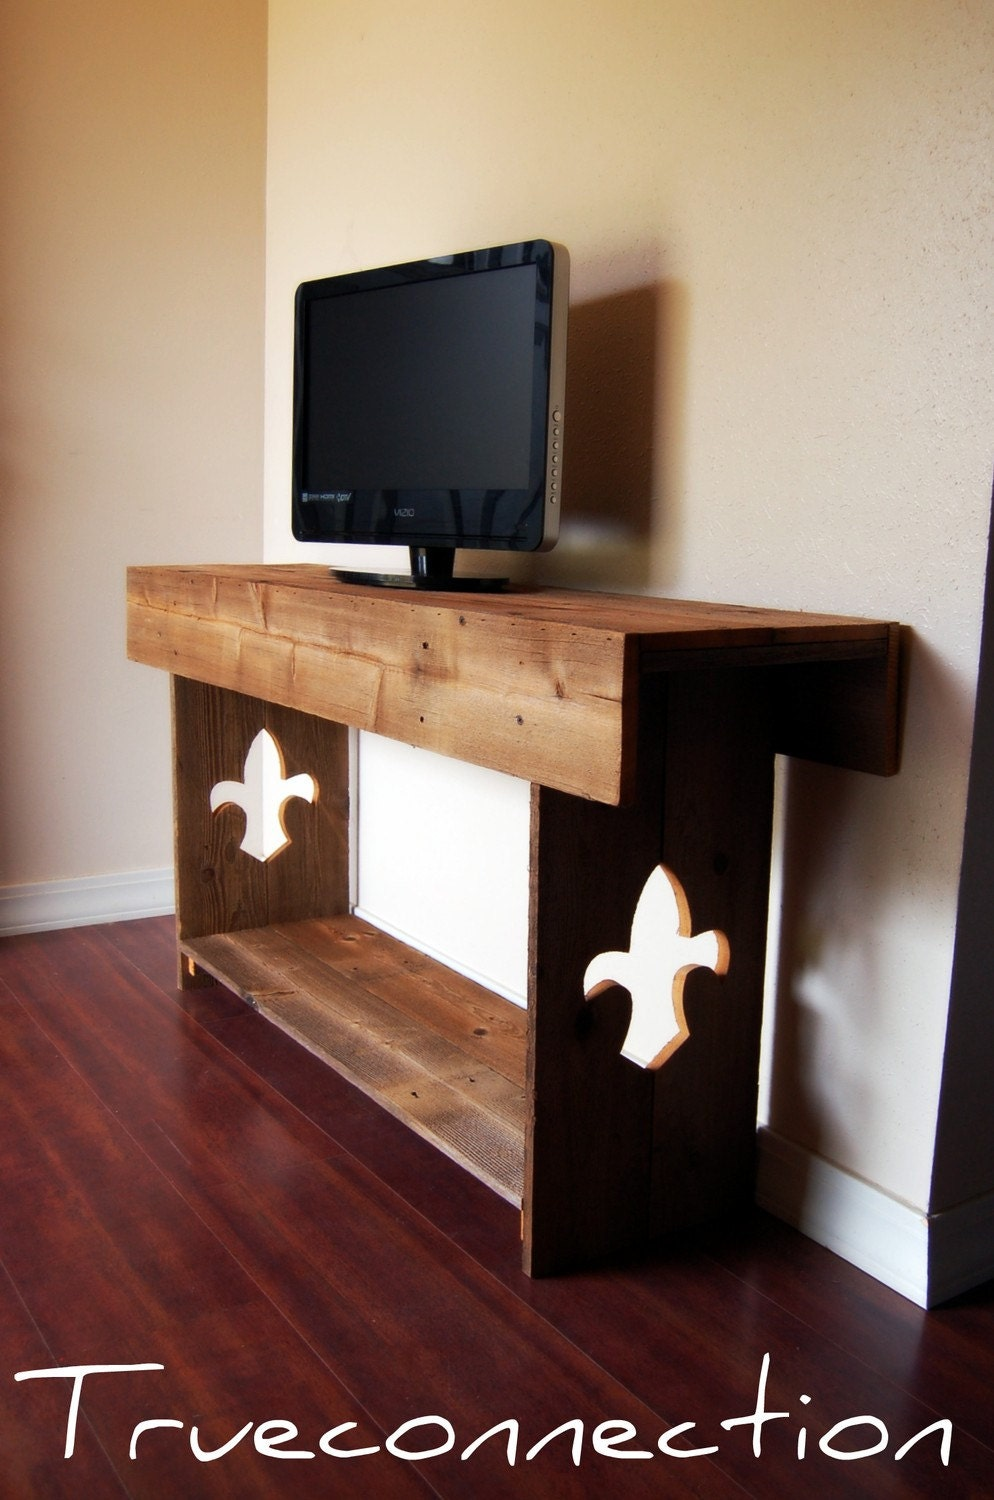 Reclaimed Wood Tv Stand With Fleur De Lis Legs By Trueconnection